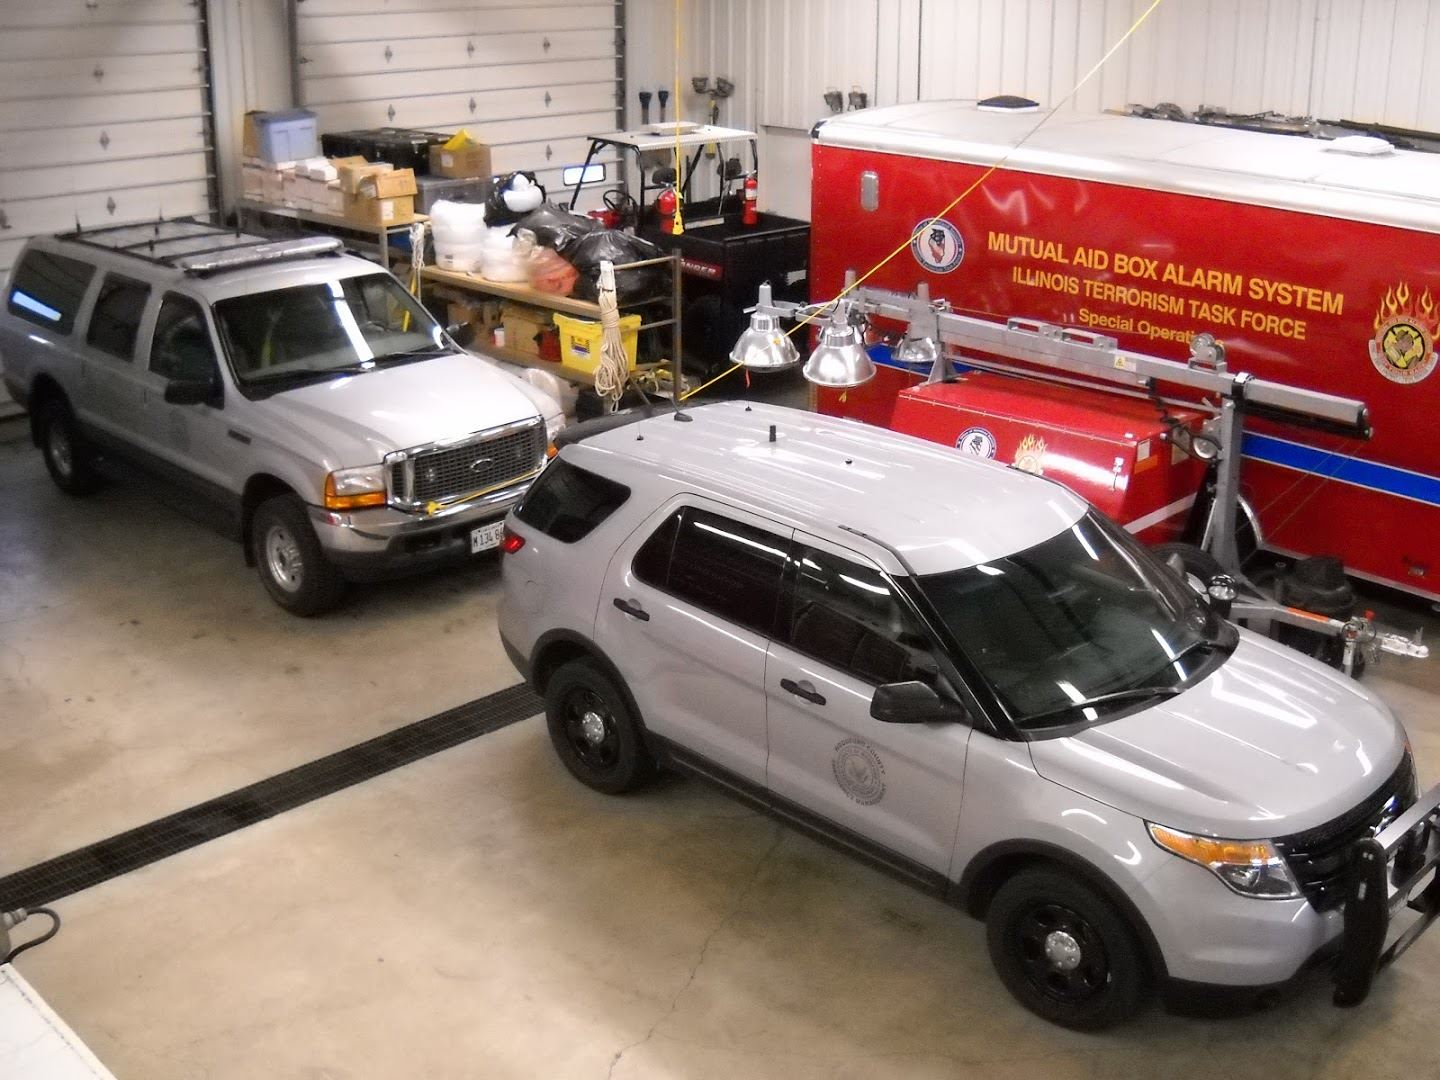 Mutual Aid Box Alarm System and SUV from Above in Garage Bay